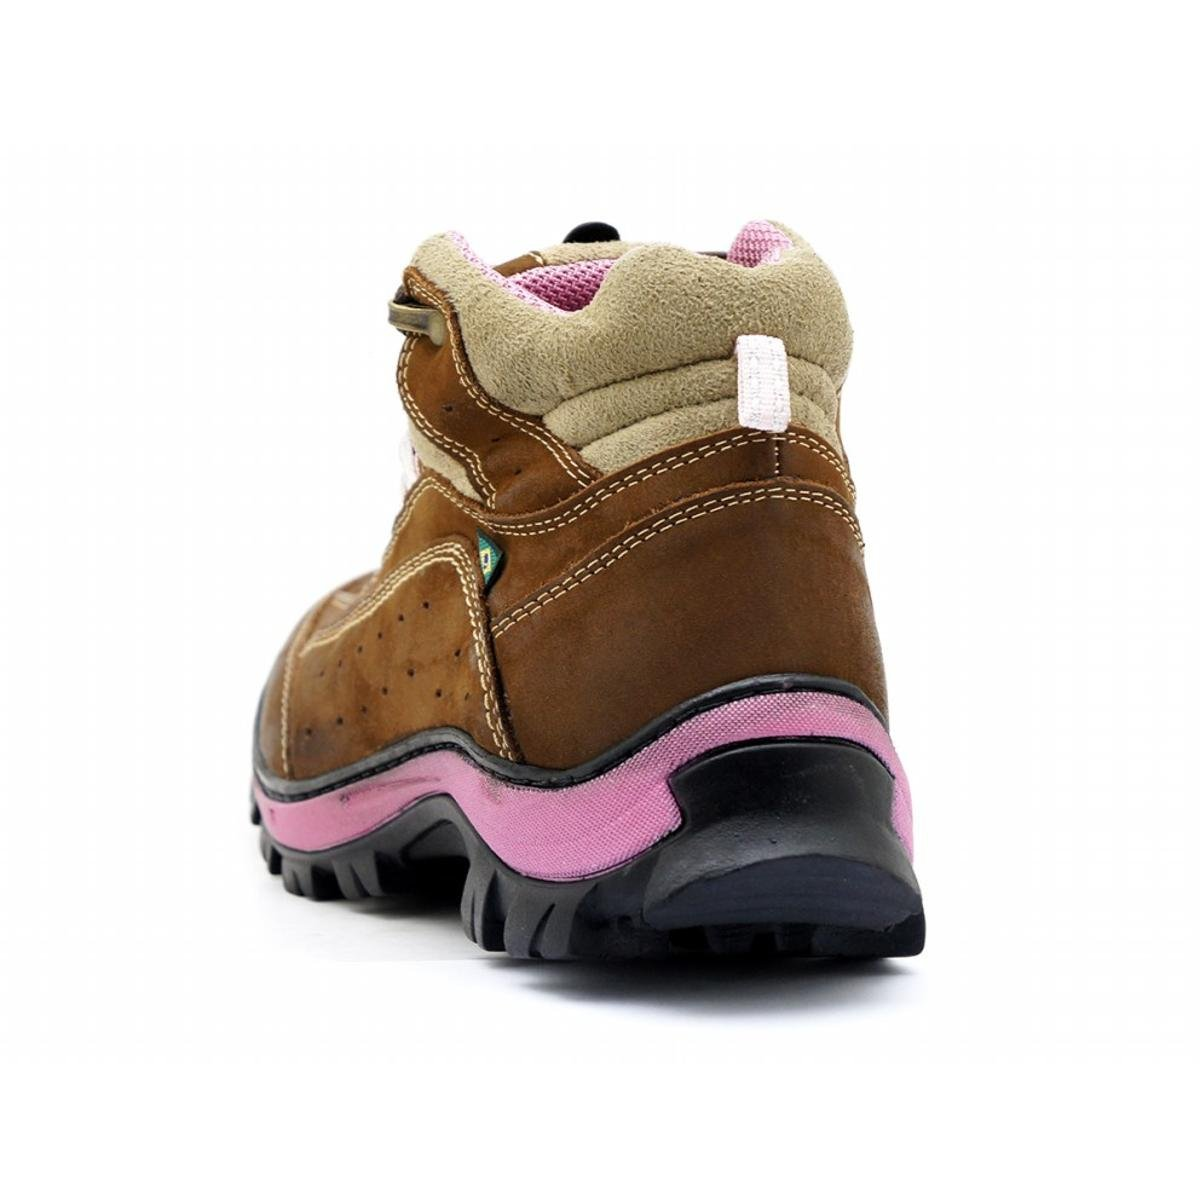 Bota Couro Bota Couro Marrom Marrom Bota Adventure Adventure Adventure d1XqwvHH